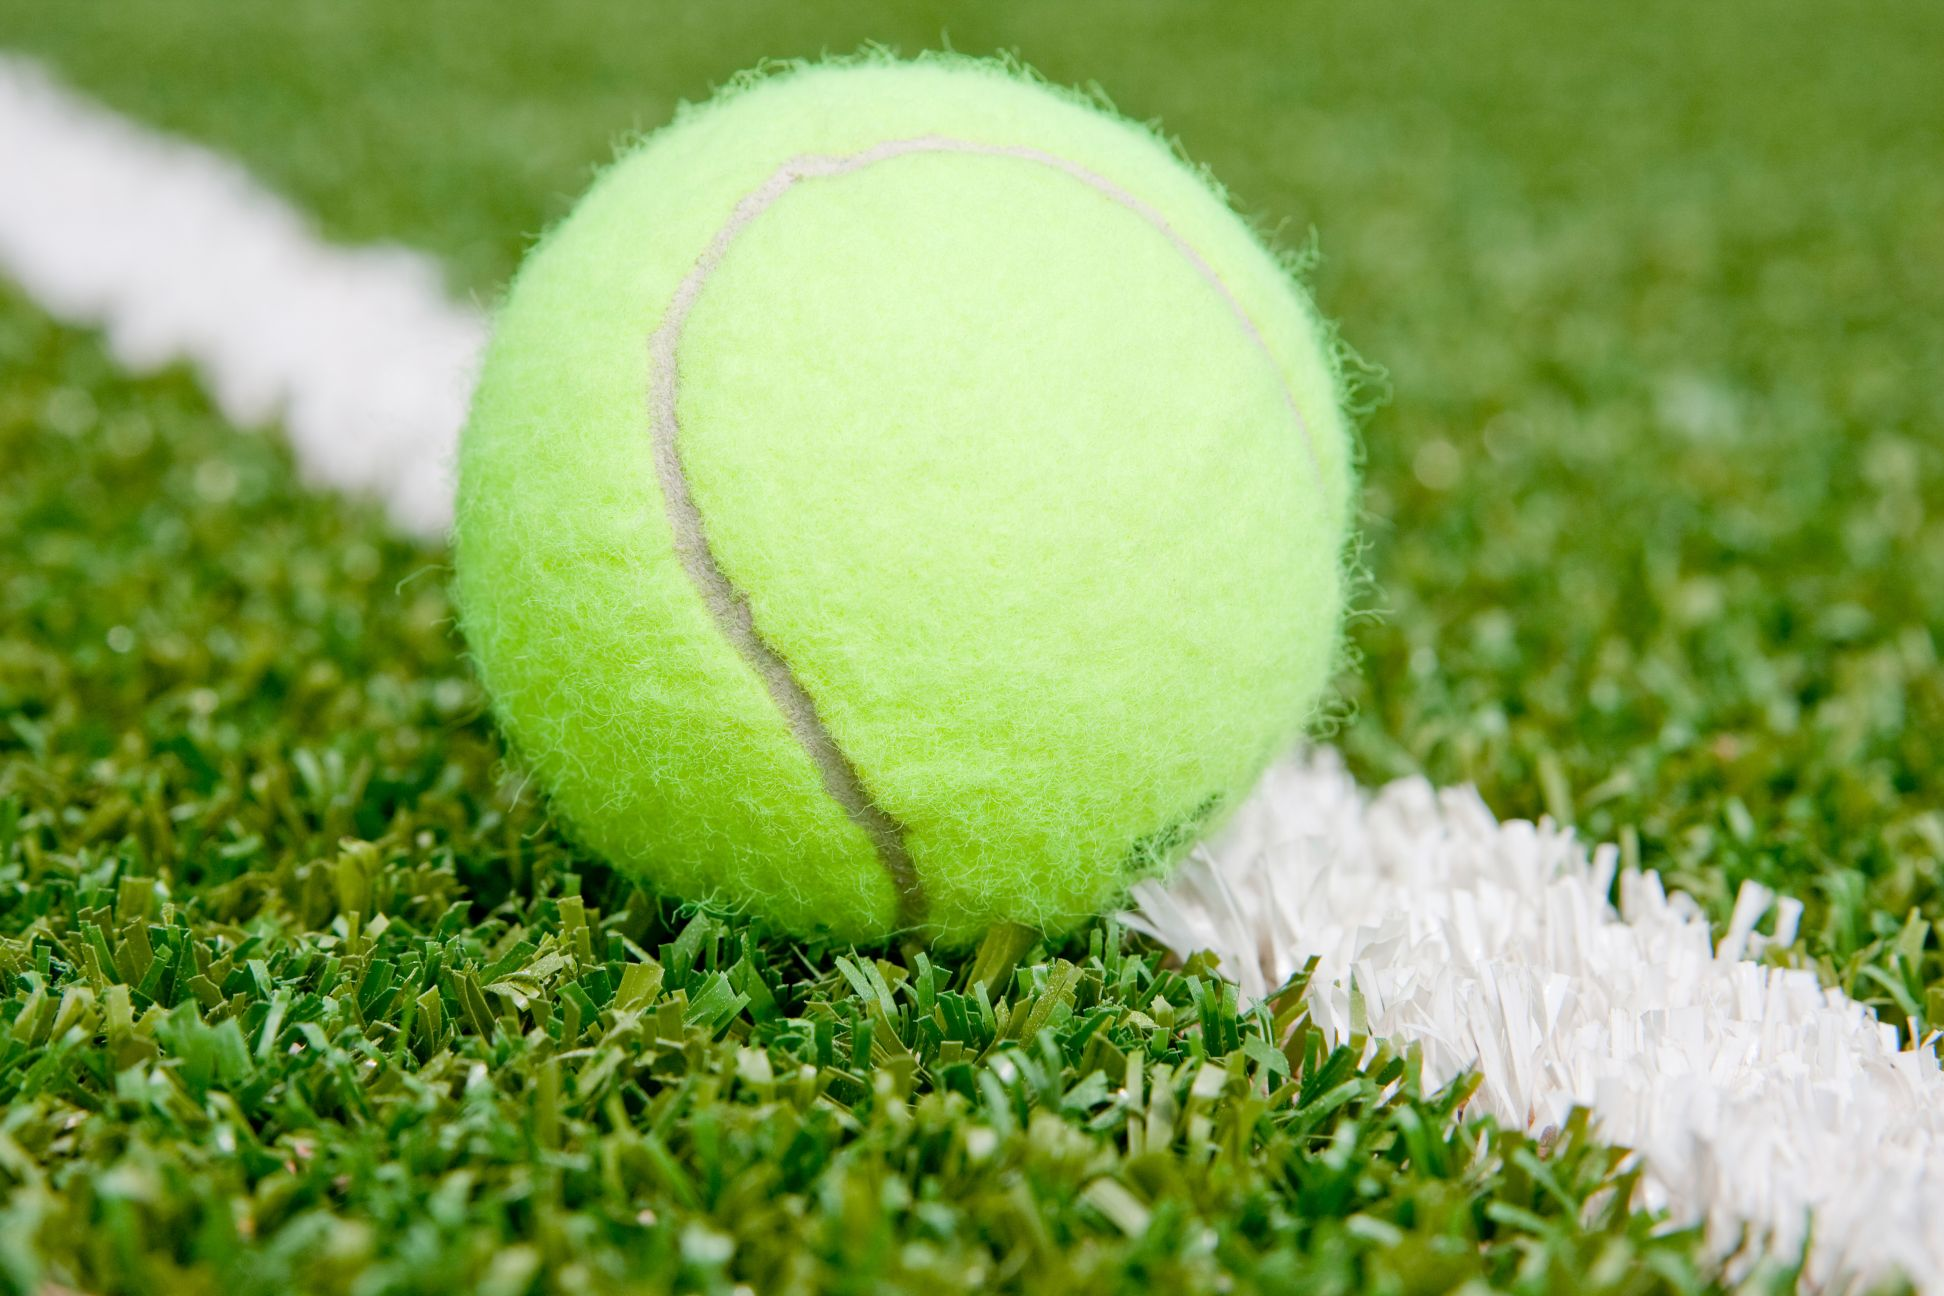 ETC Sports Surfaces are experts in the design and installation of all types of tennis courts, from clay and asphalt to sand based artificial grass